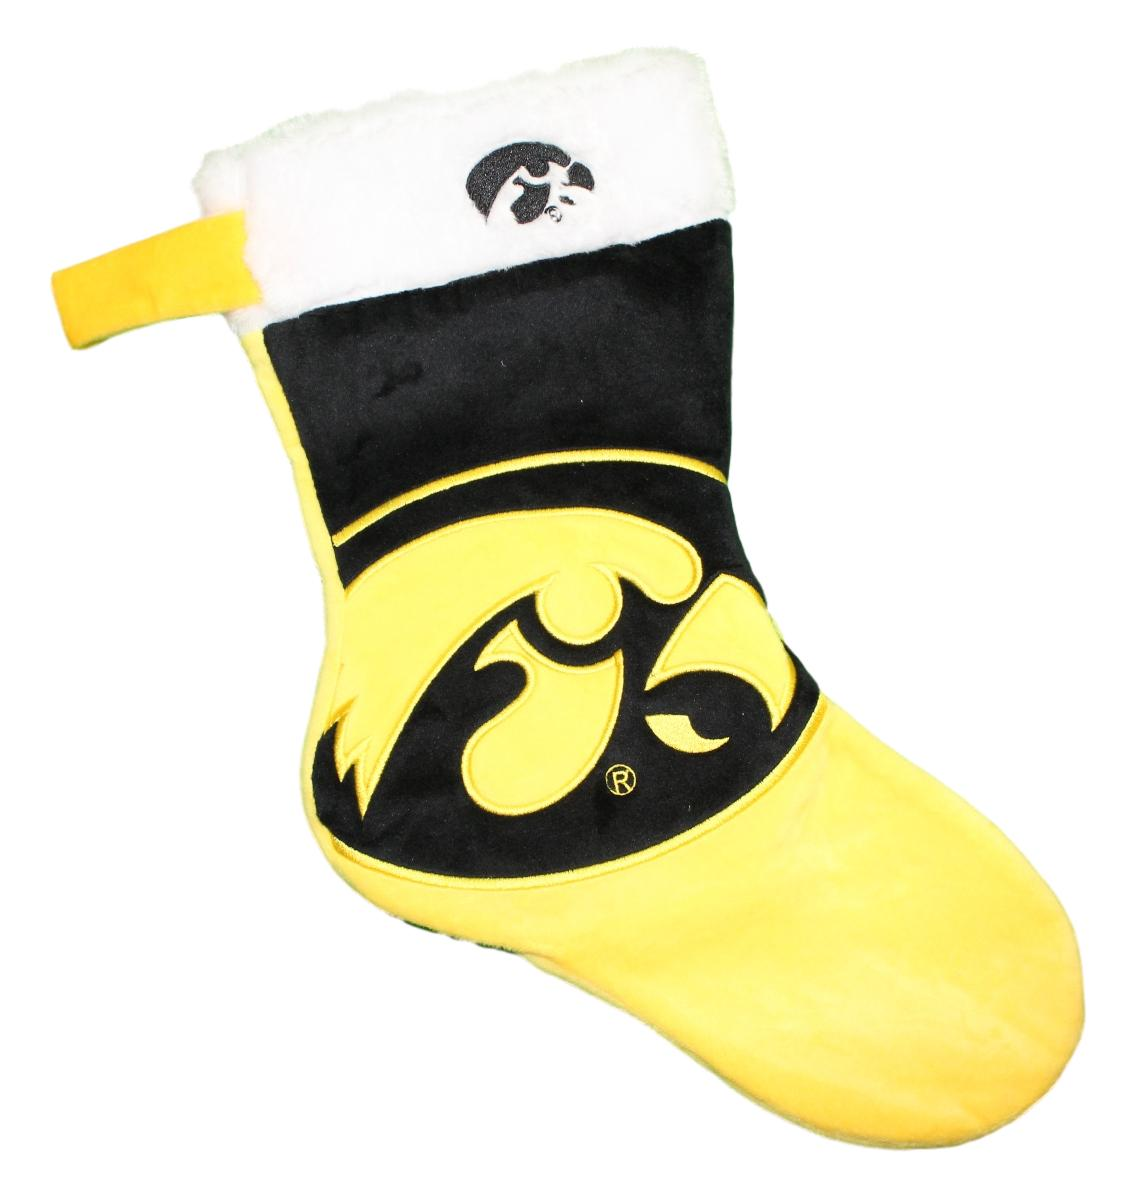 Iowa Hawkeyes 2018 NCAA Basic Logo Plush Christmas Stocking